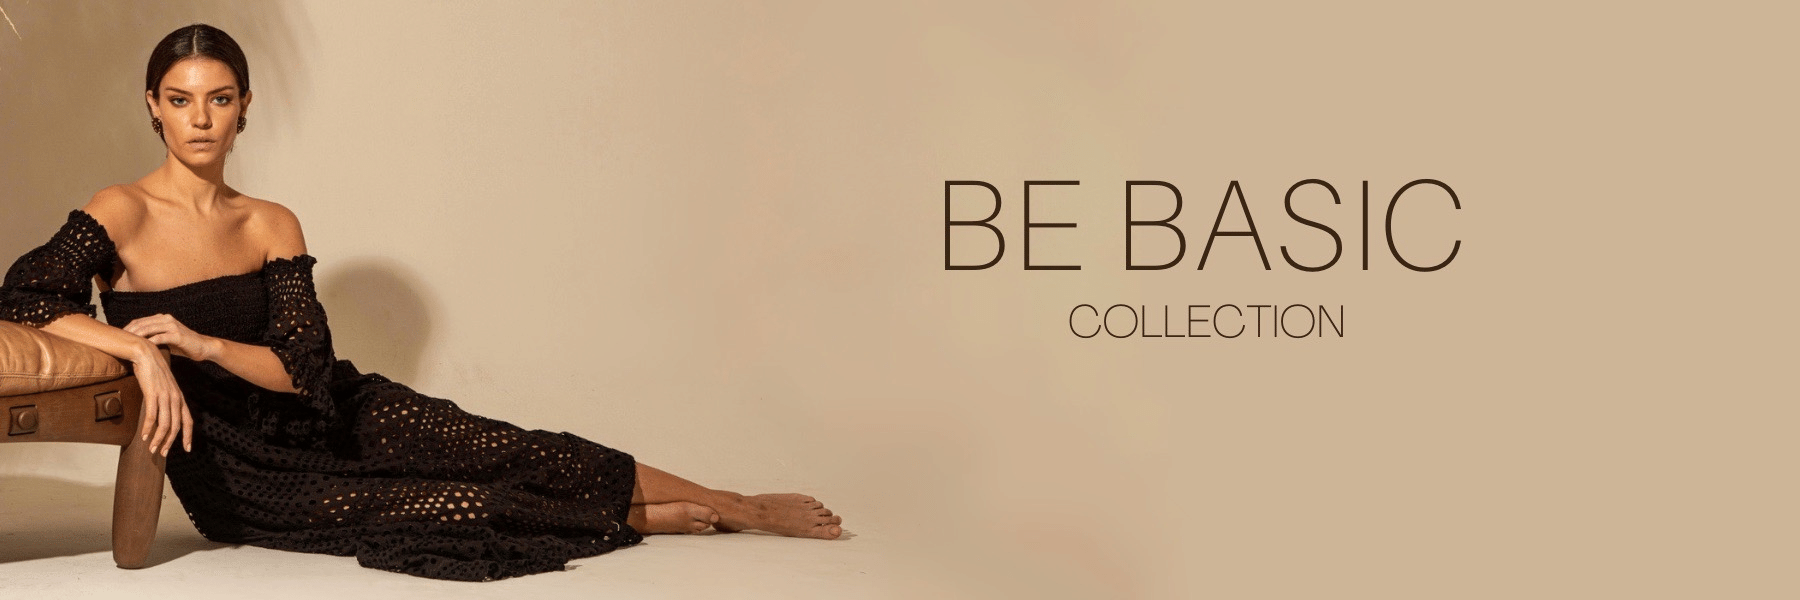 be basic collection 2